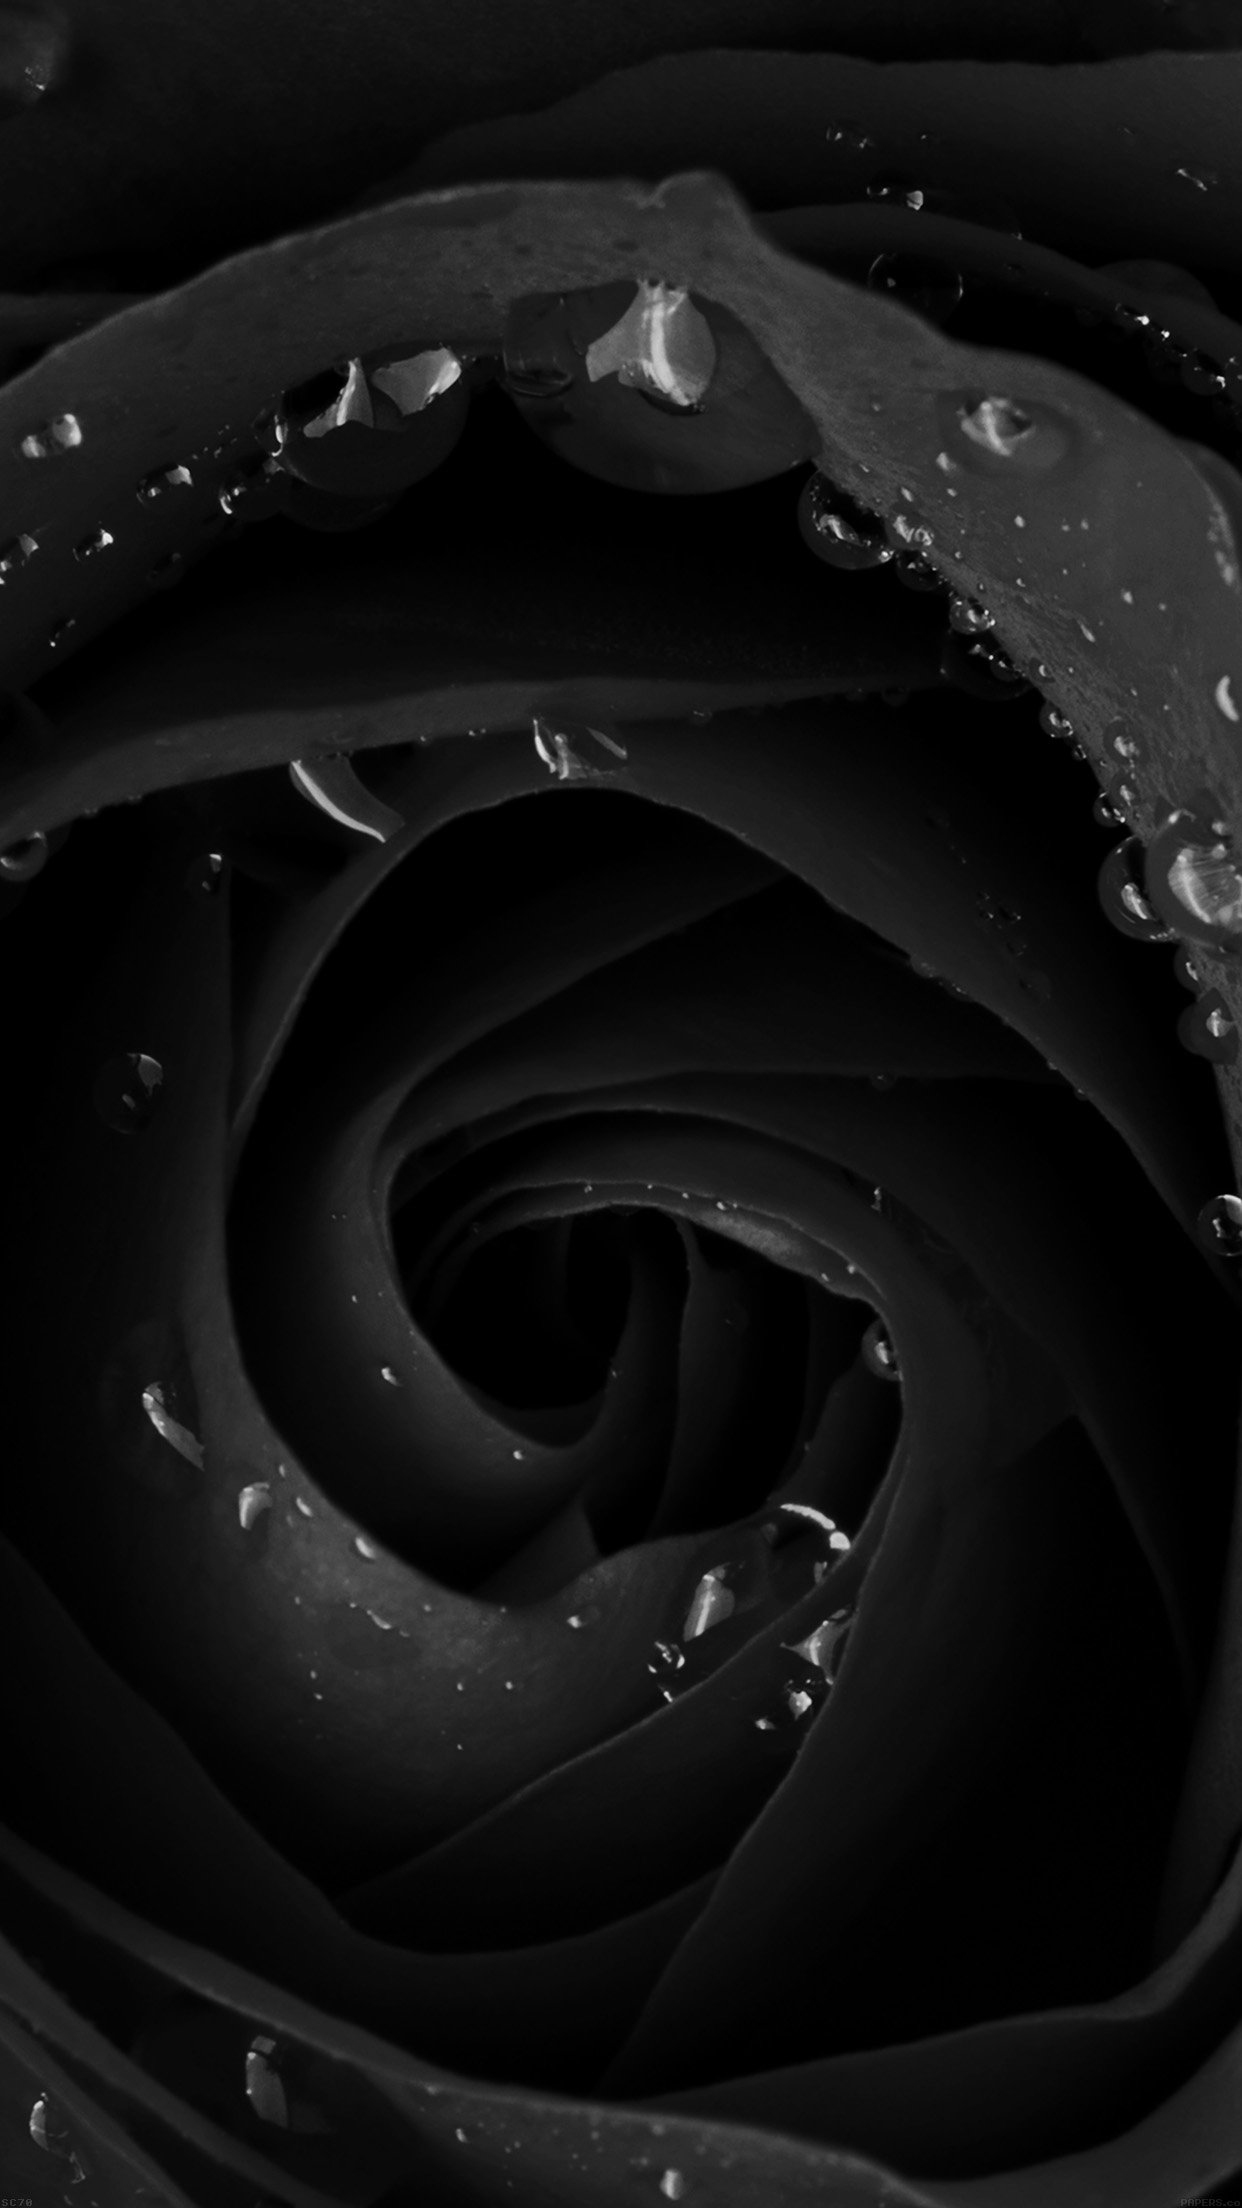 Wallpaper Hd Iphone Flower Dark Background Dark Rose